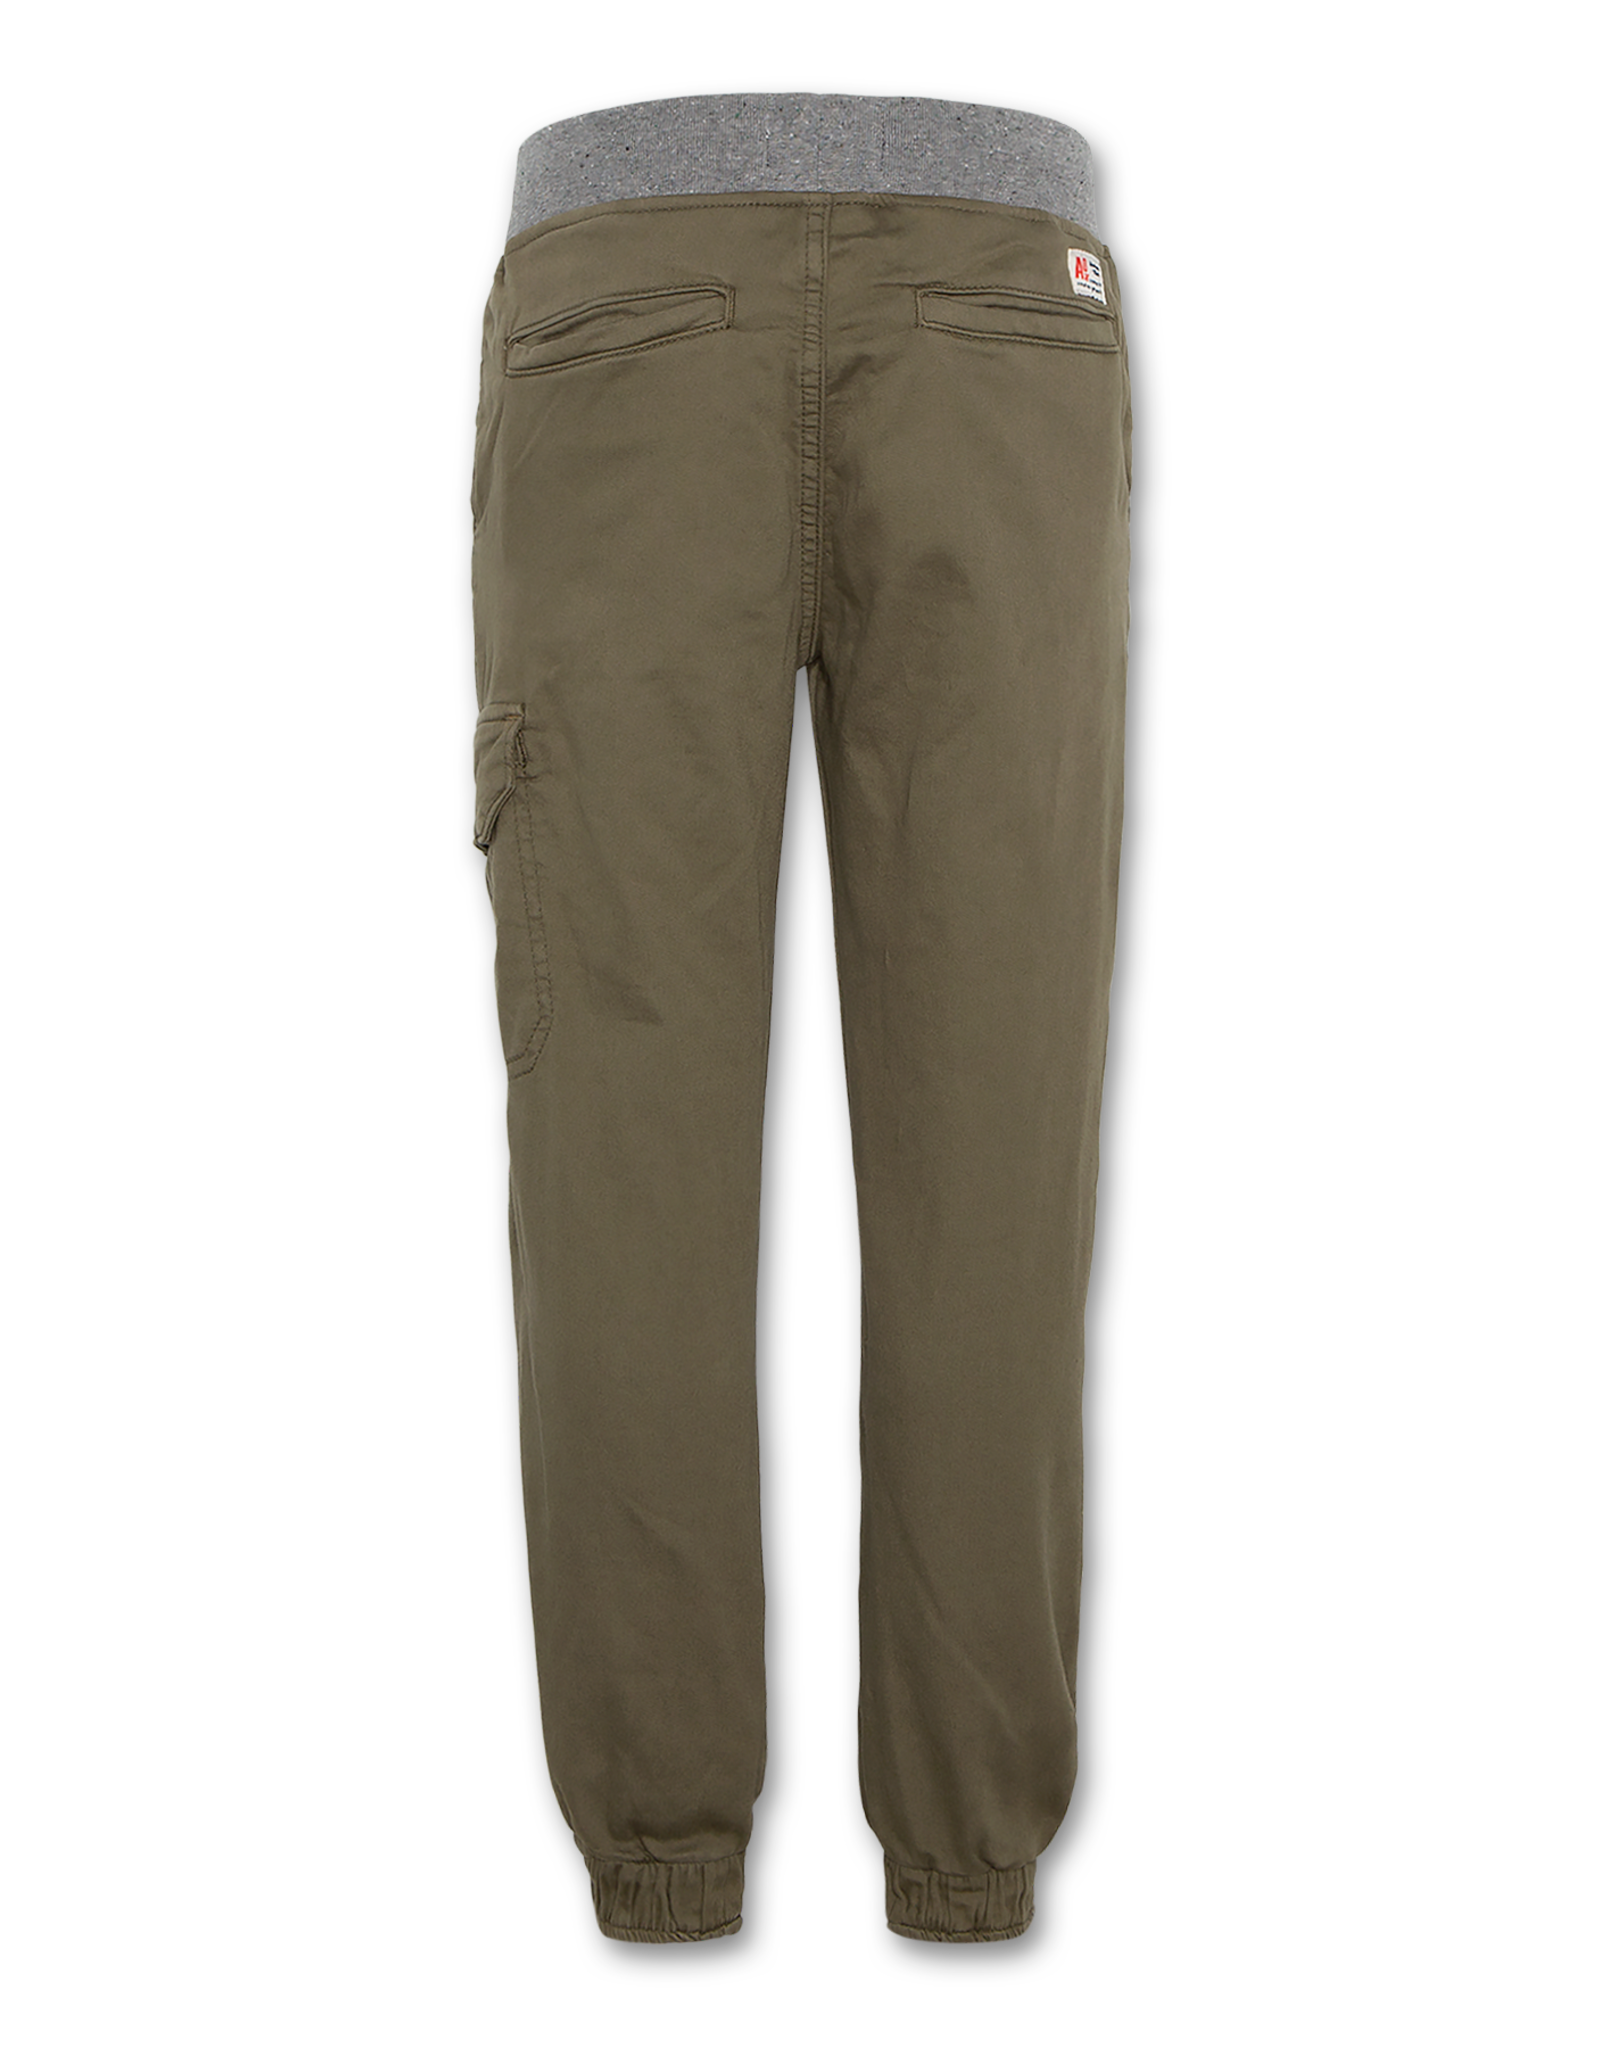 AMERICAN OUTFITTERS AO76 donald colour jogger pants olive